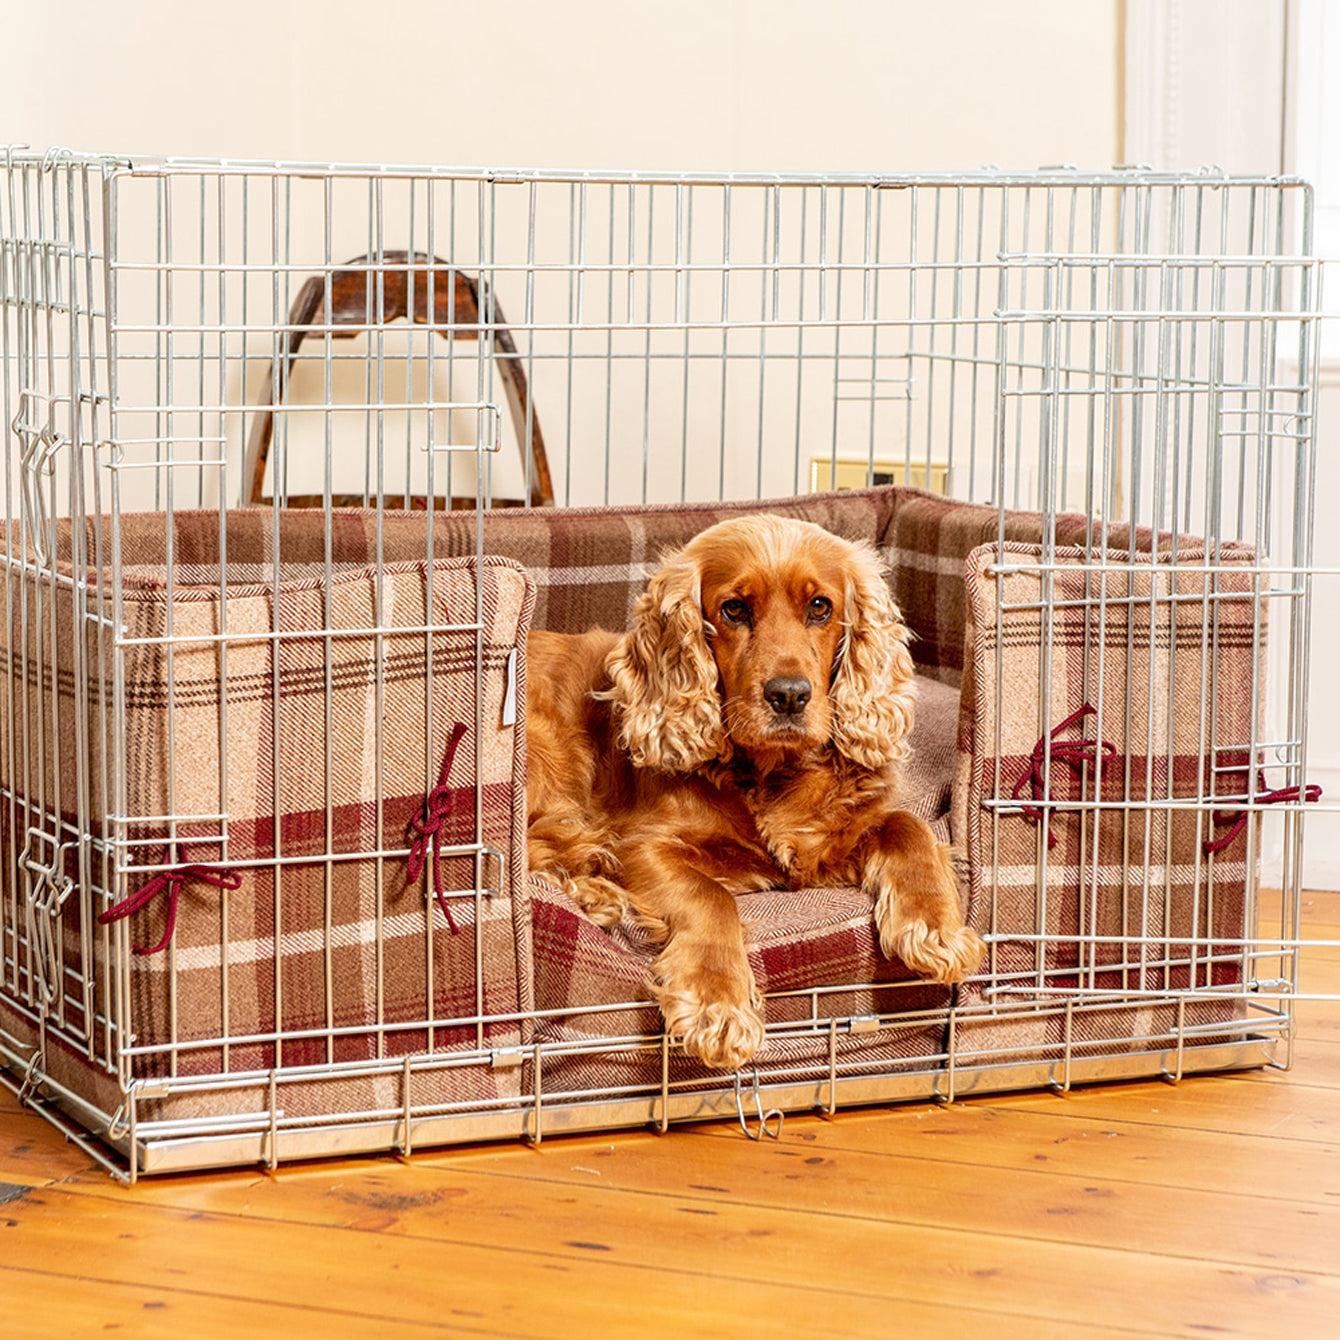 Cocker spaniel sitting in dog crate with crate set bedding by Lords & Labradors